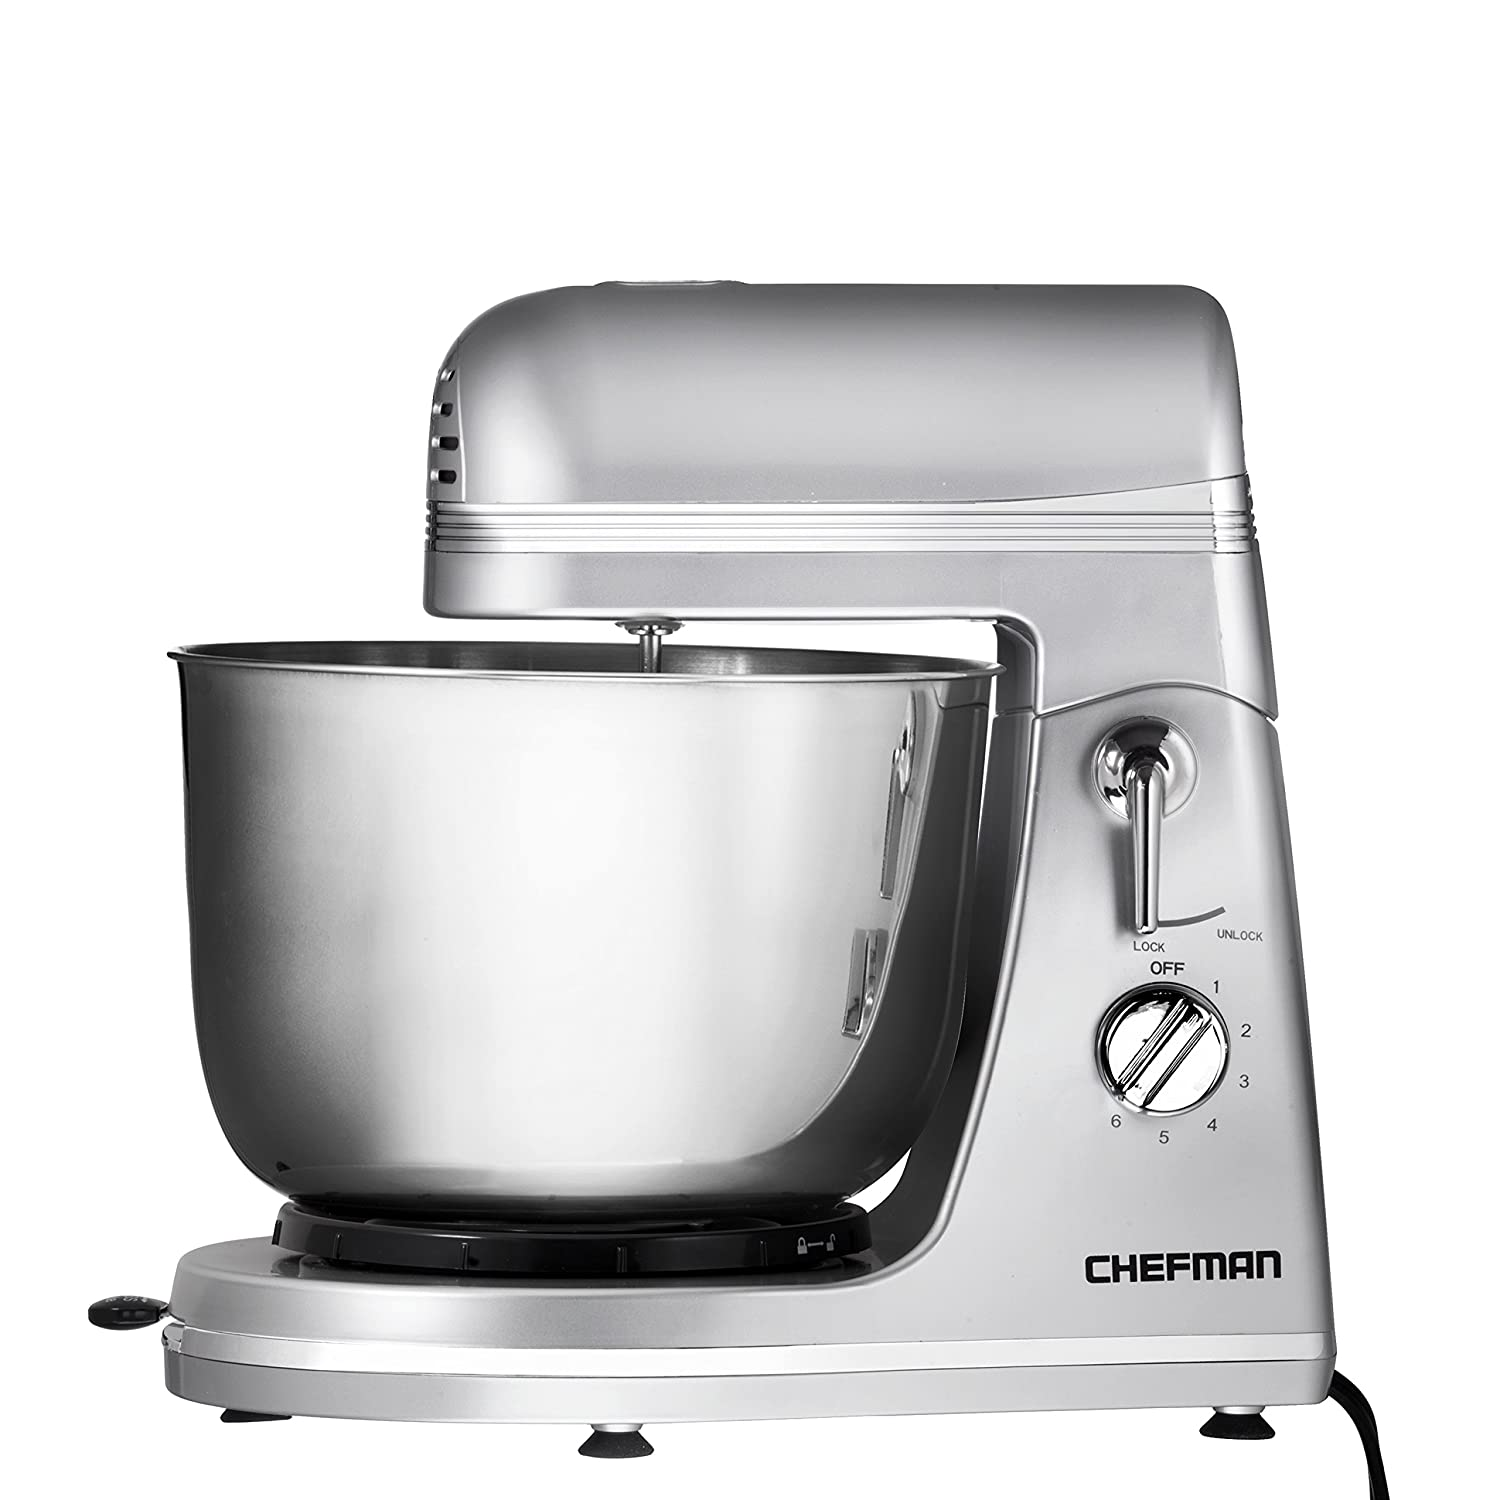 Chefman RJ32-S Ultra Power Stand Mixer W/Stainless Steel Bowl-Silver, 4 Qt